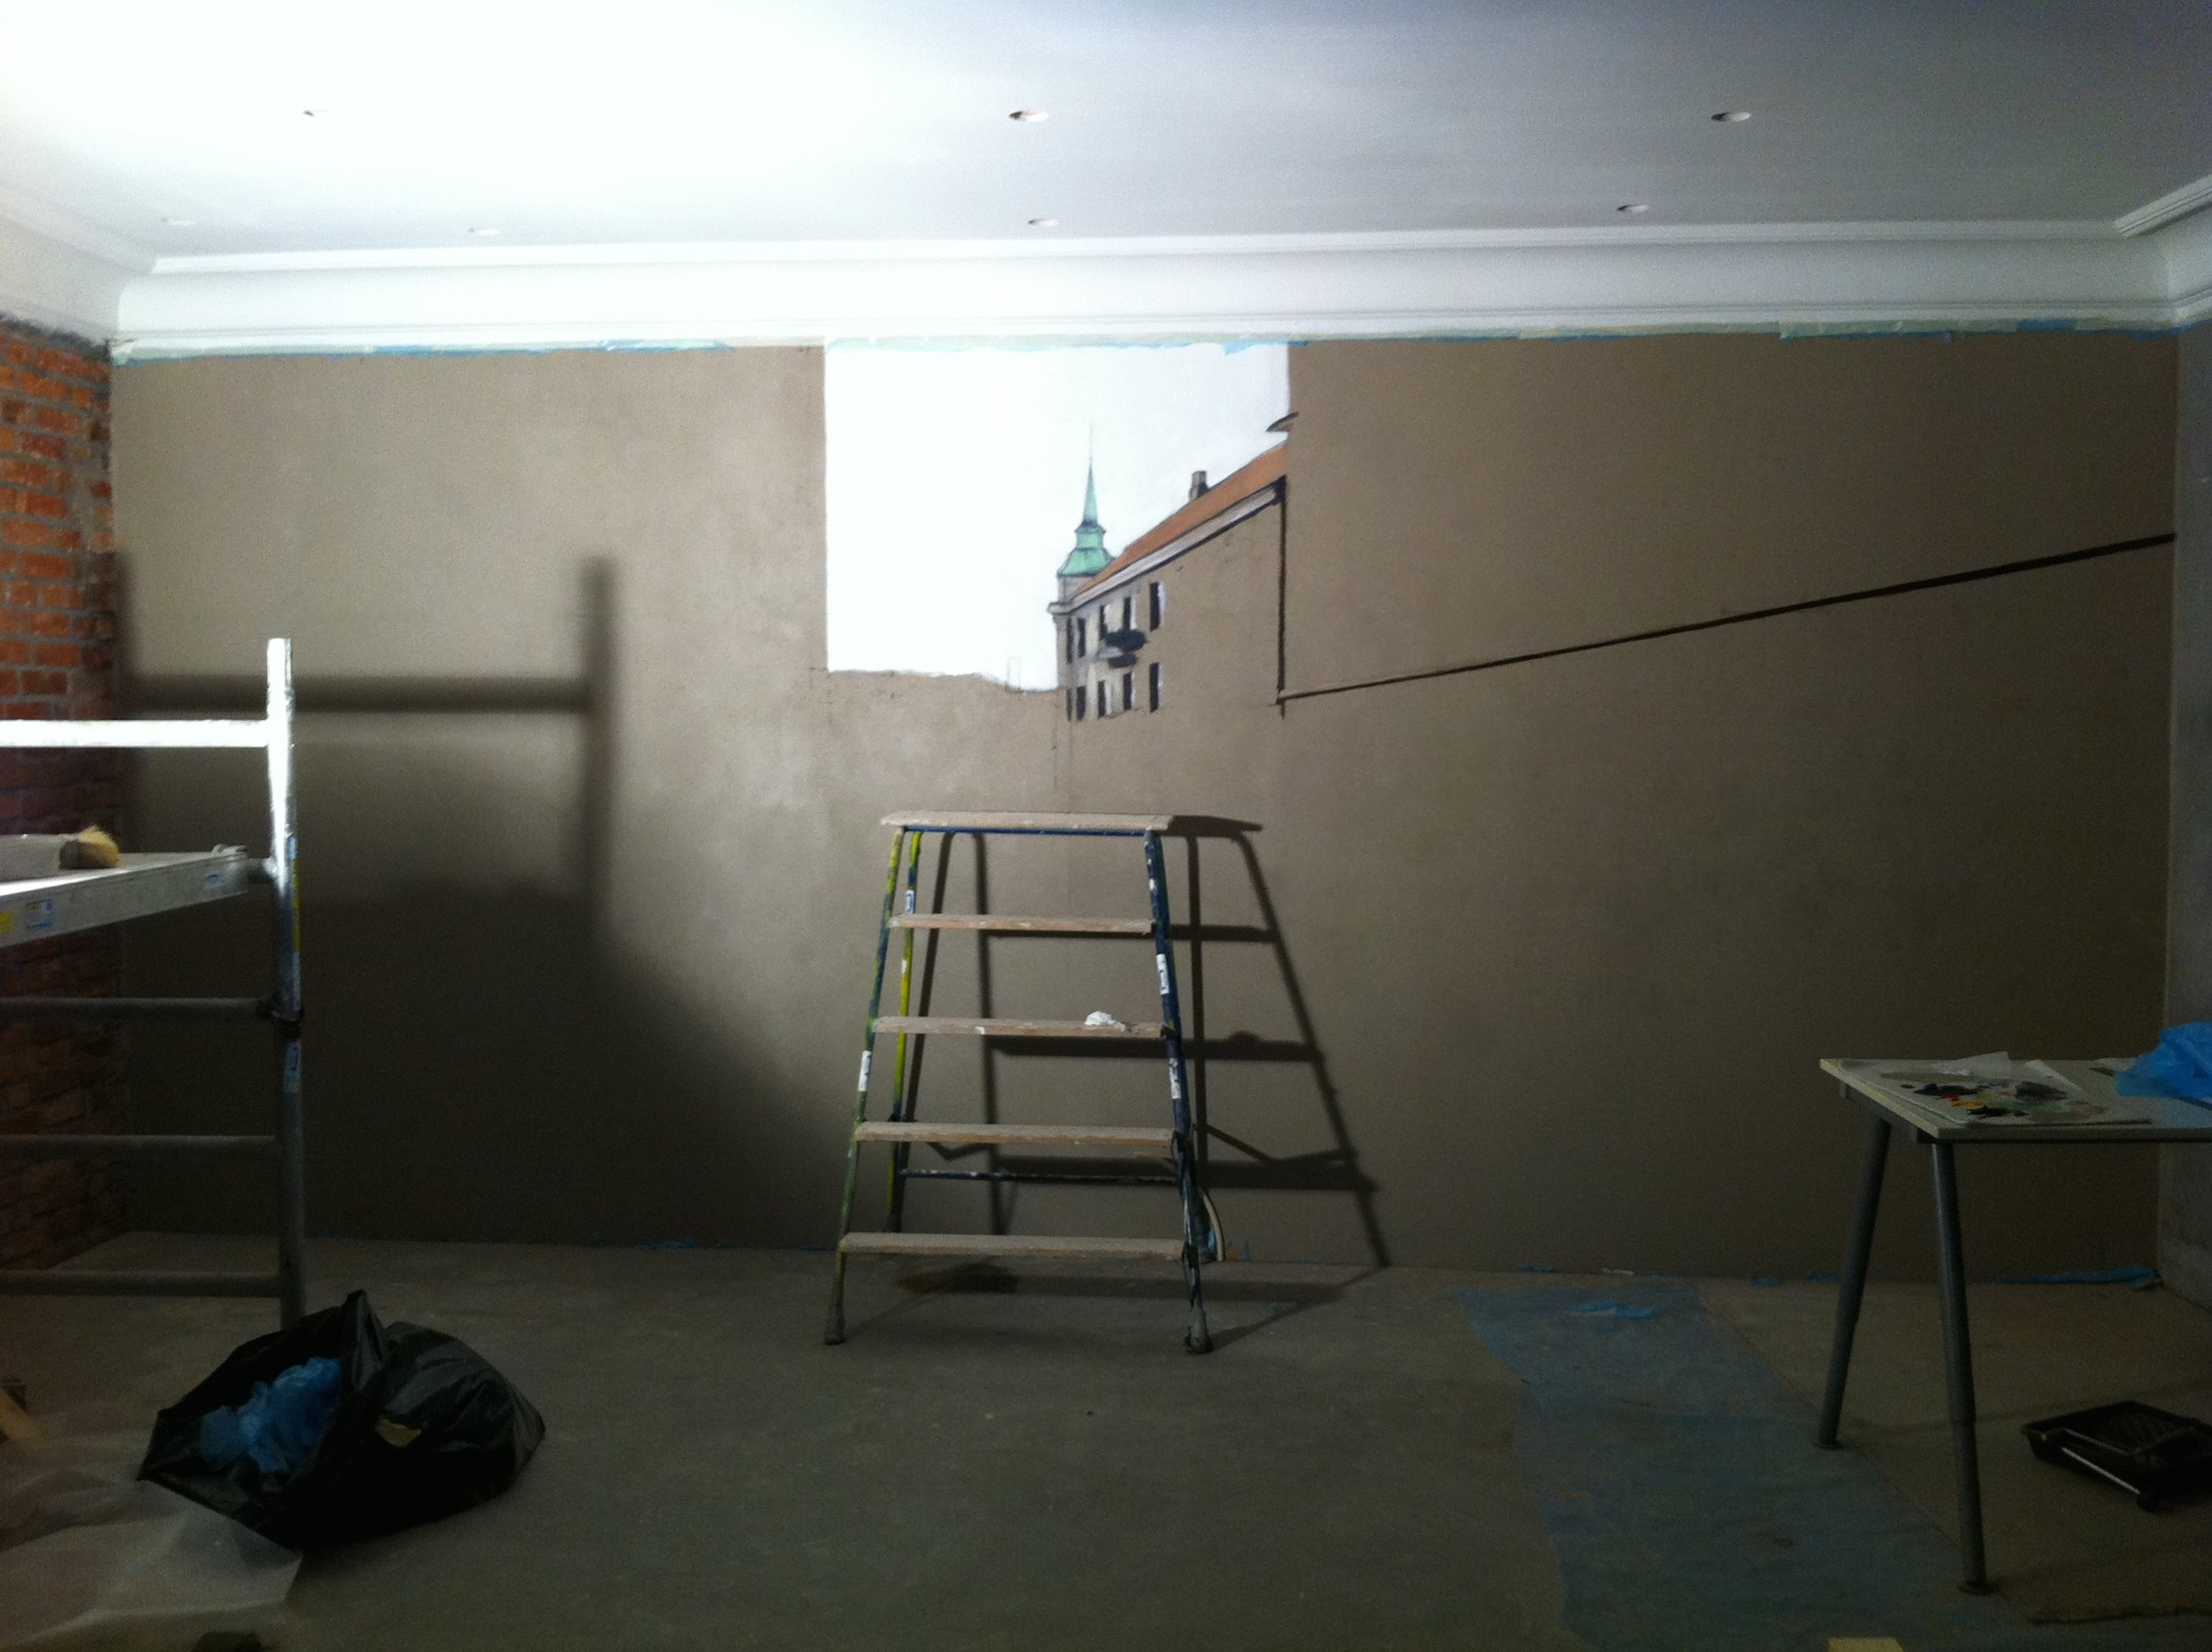 The first day of painting on the wall